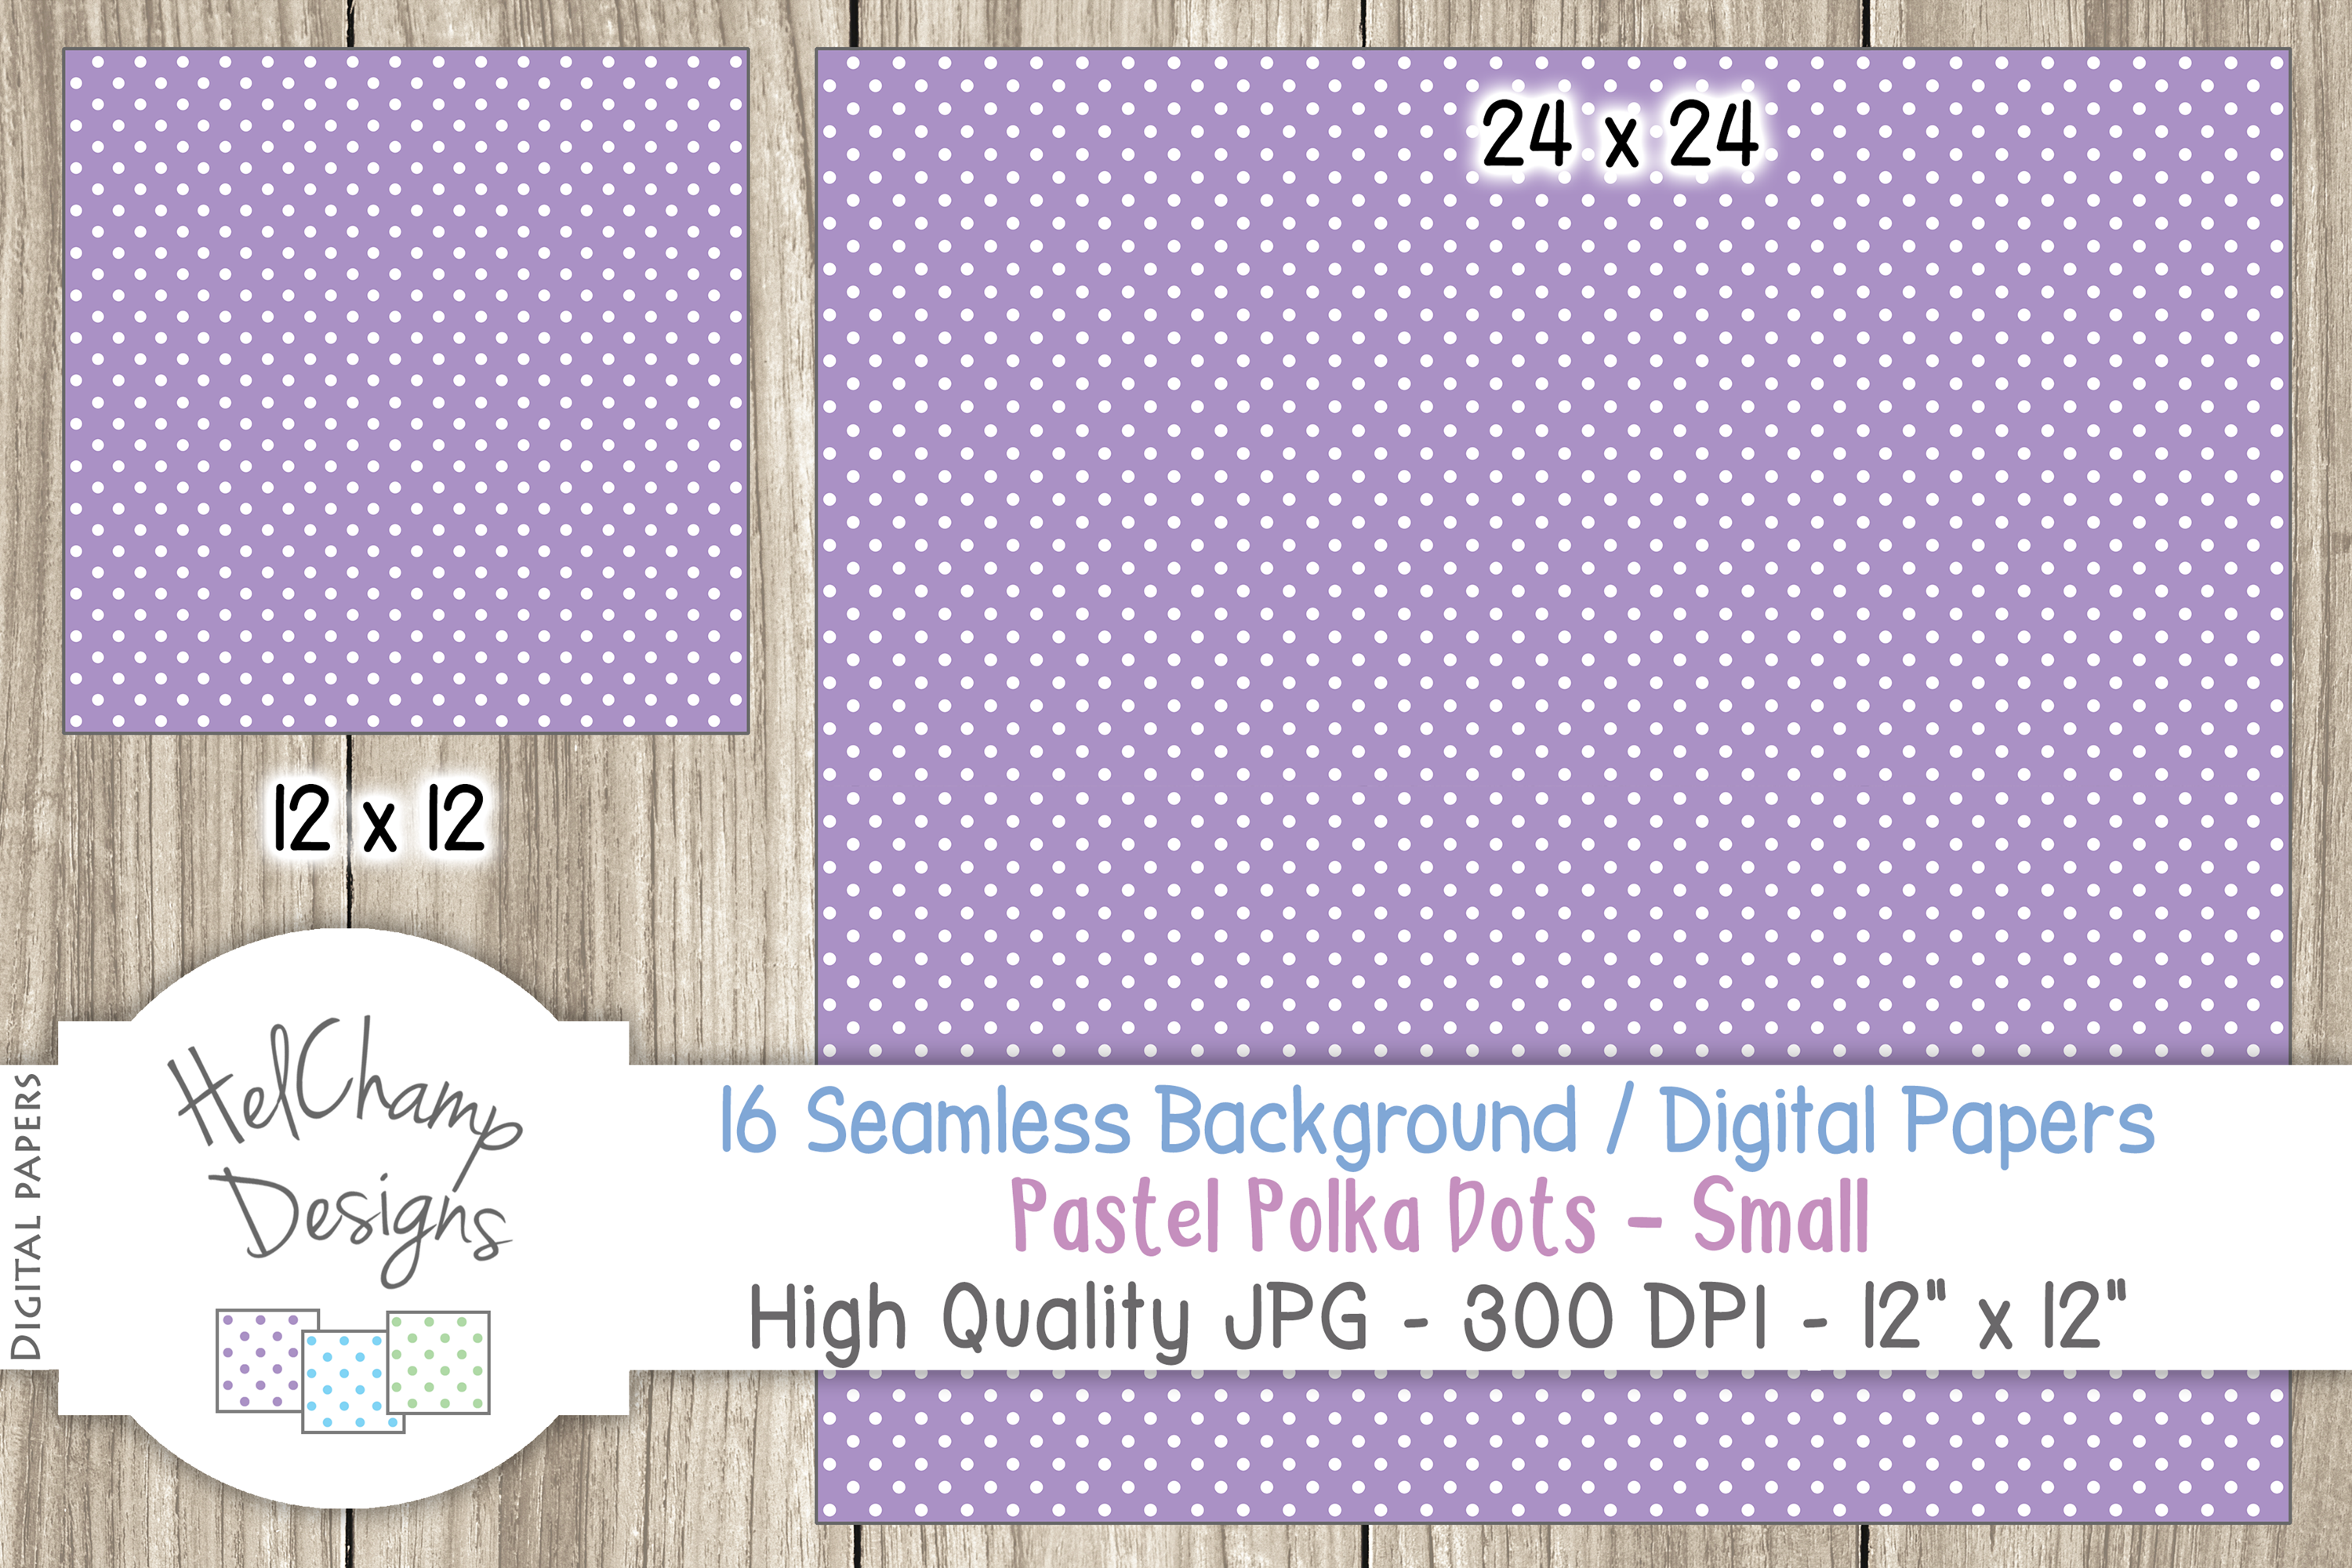 16 seamless Digital Papers - Pastel Polka Dots Small - HC009 example image 6